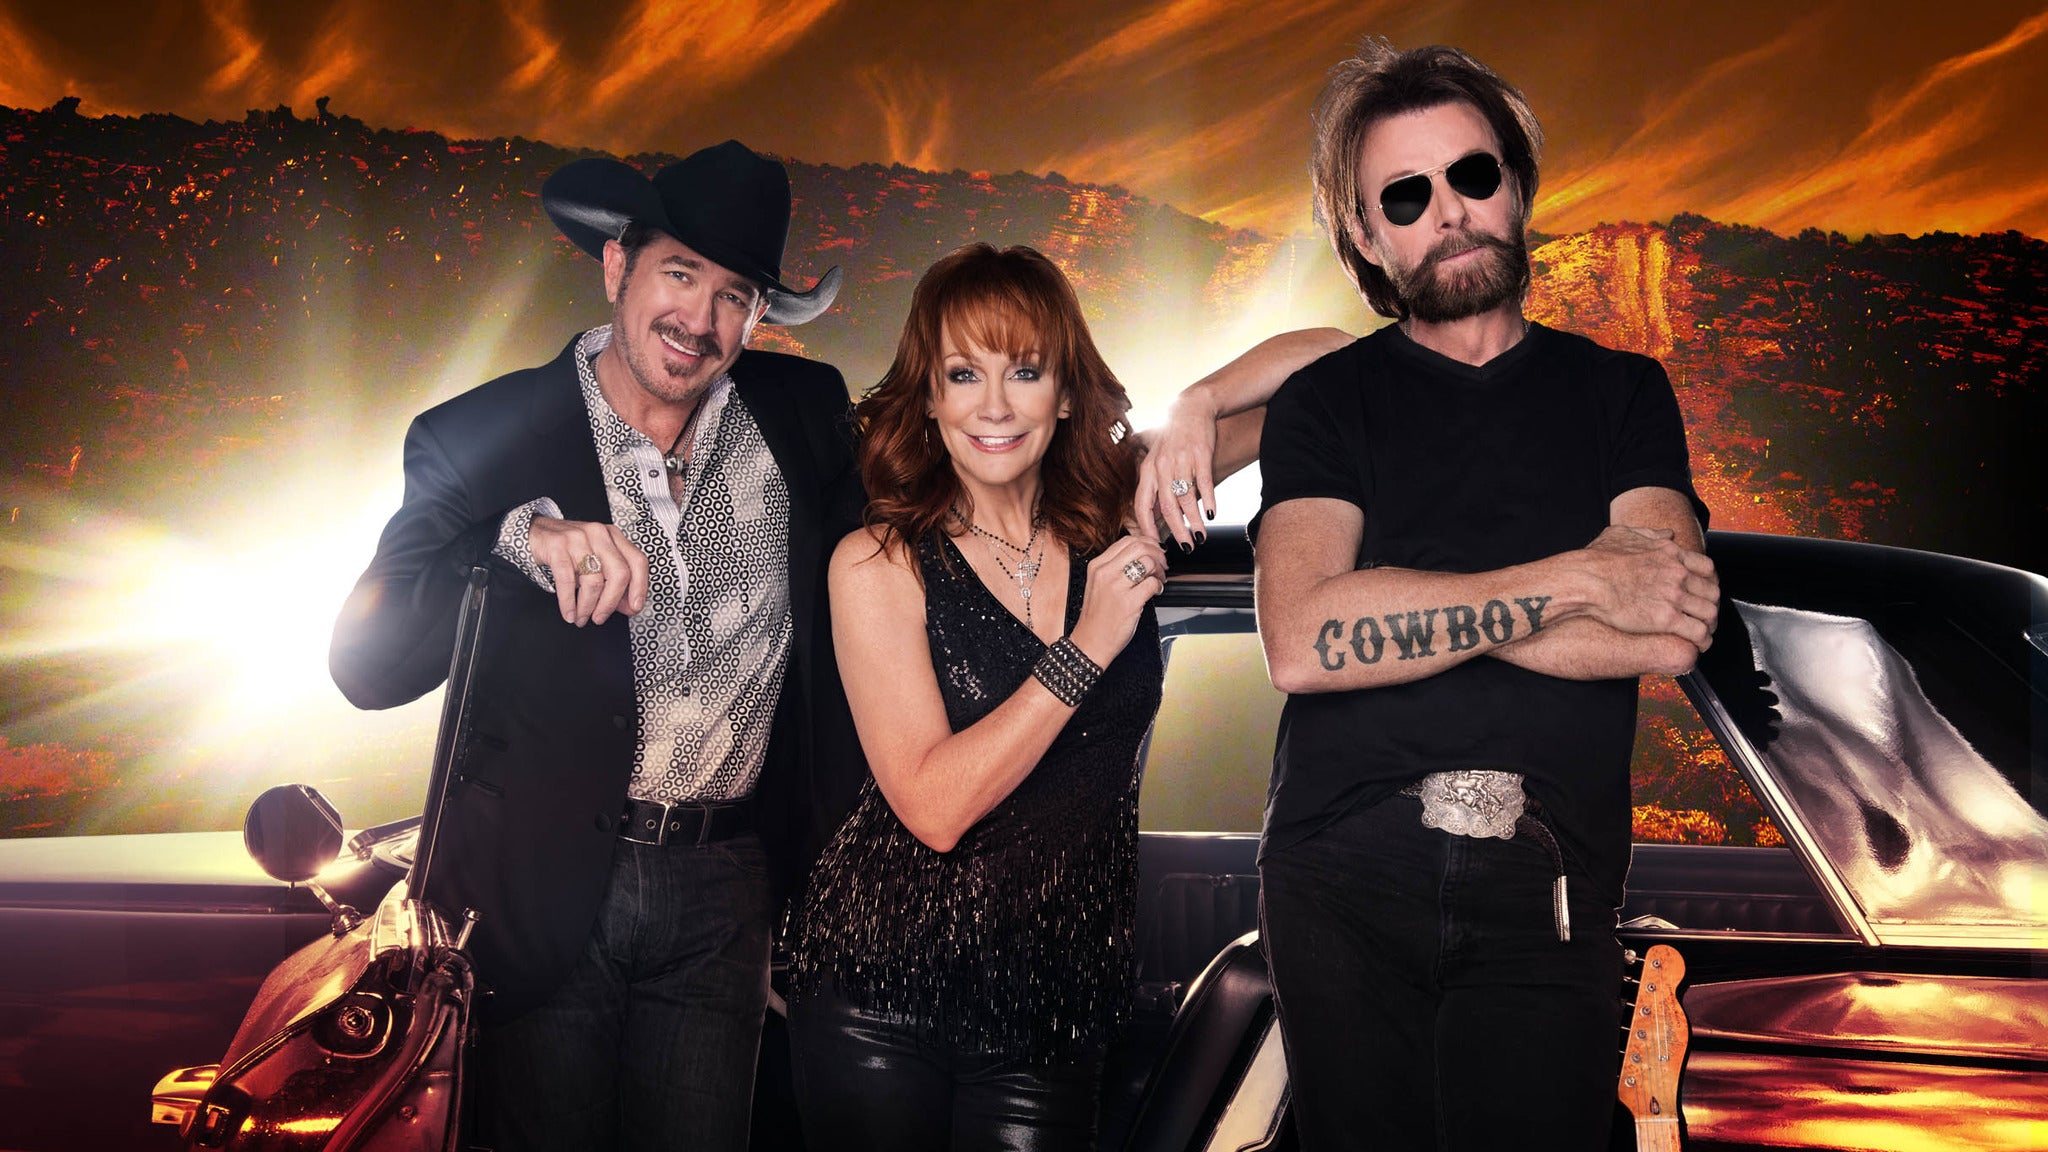 Reba, Brooks & Dunn Tickets, 2020 Concert Tour Dates | Ticketmaster